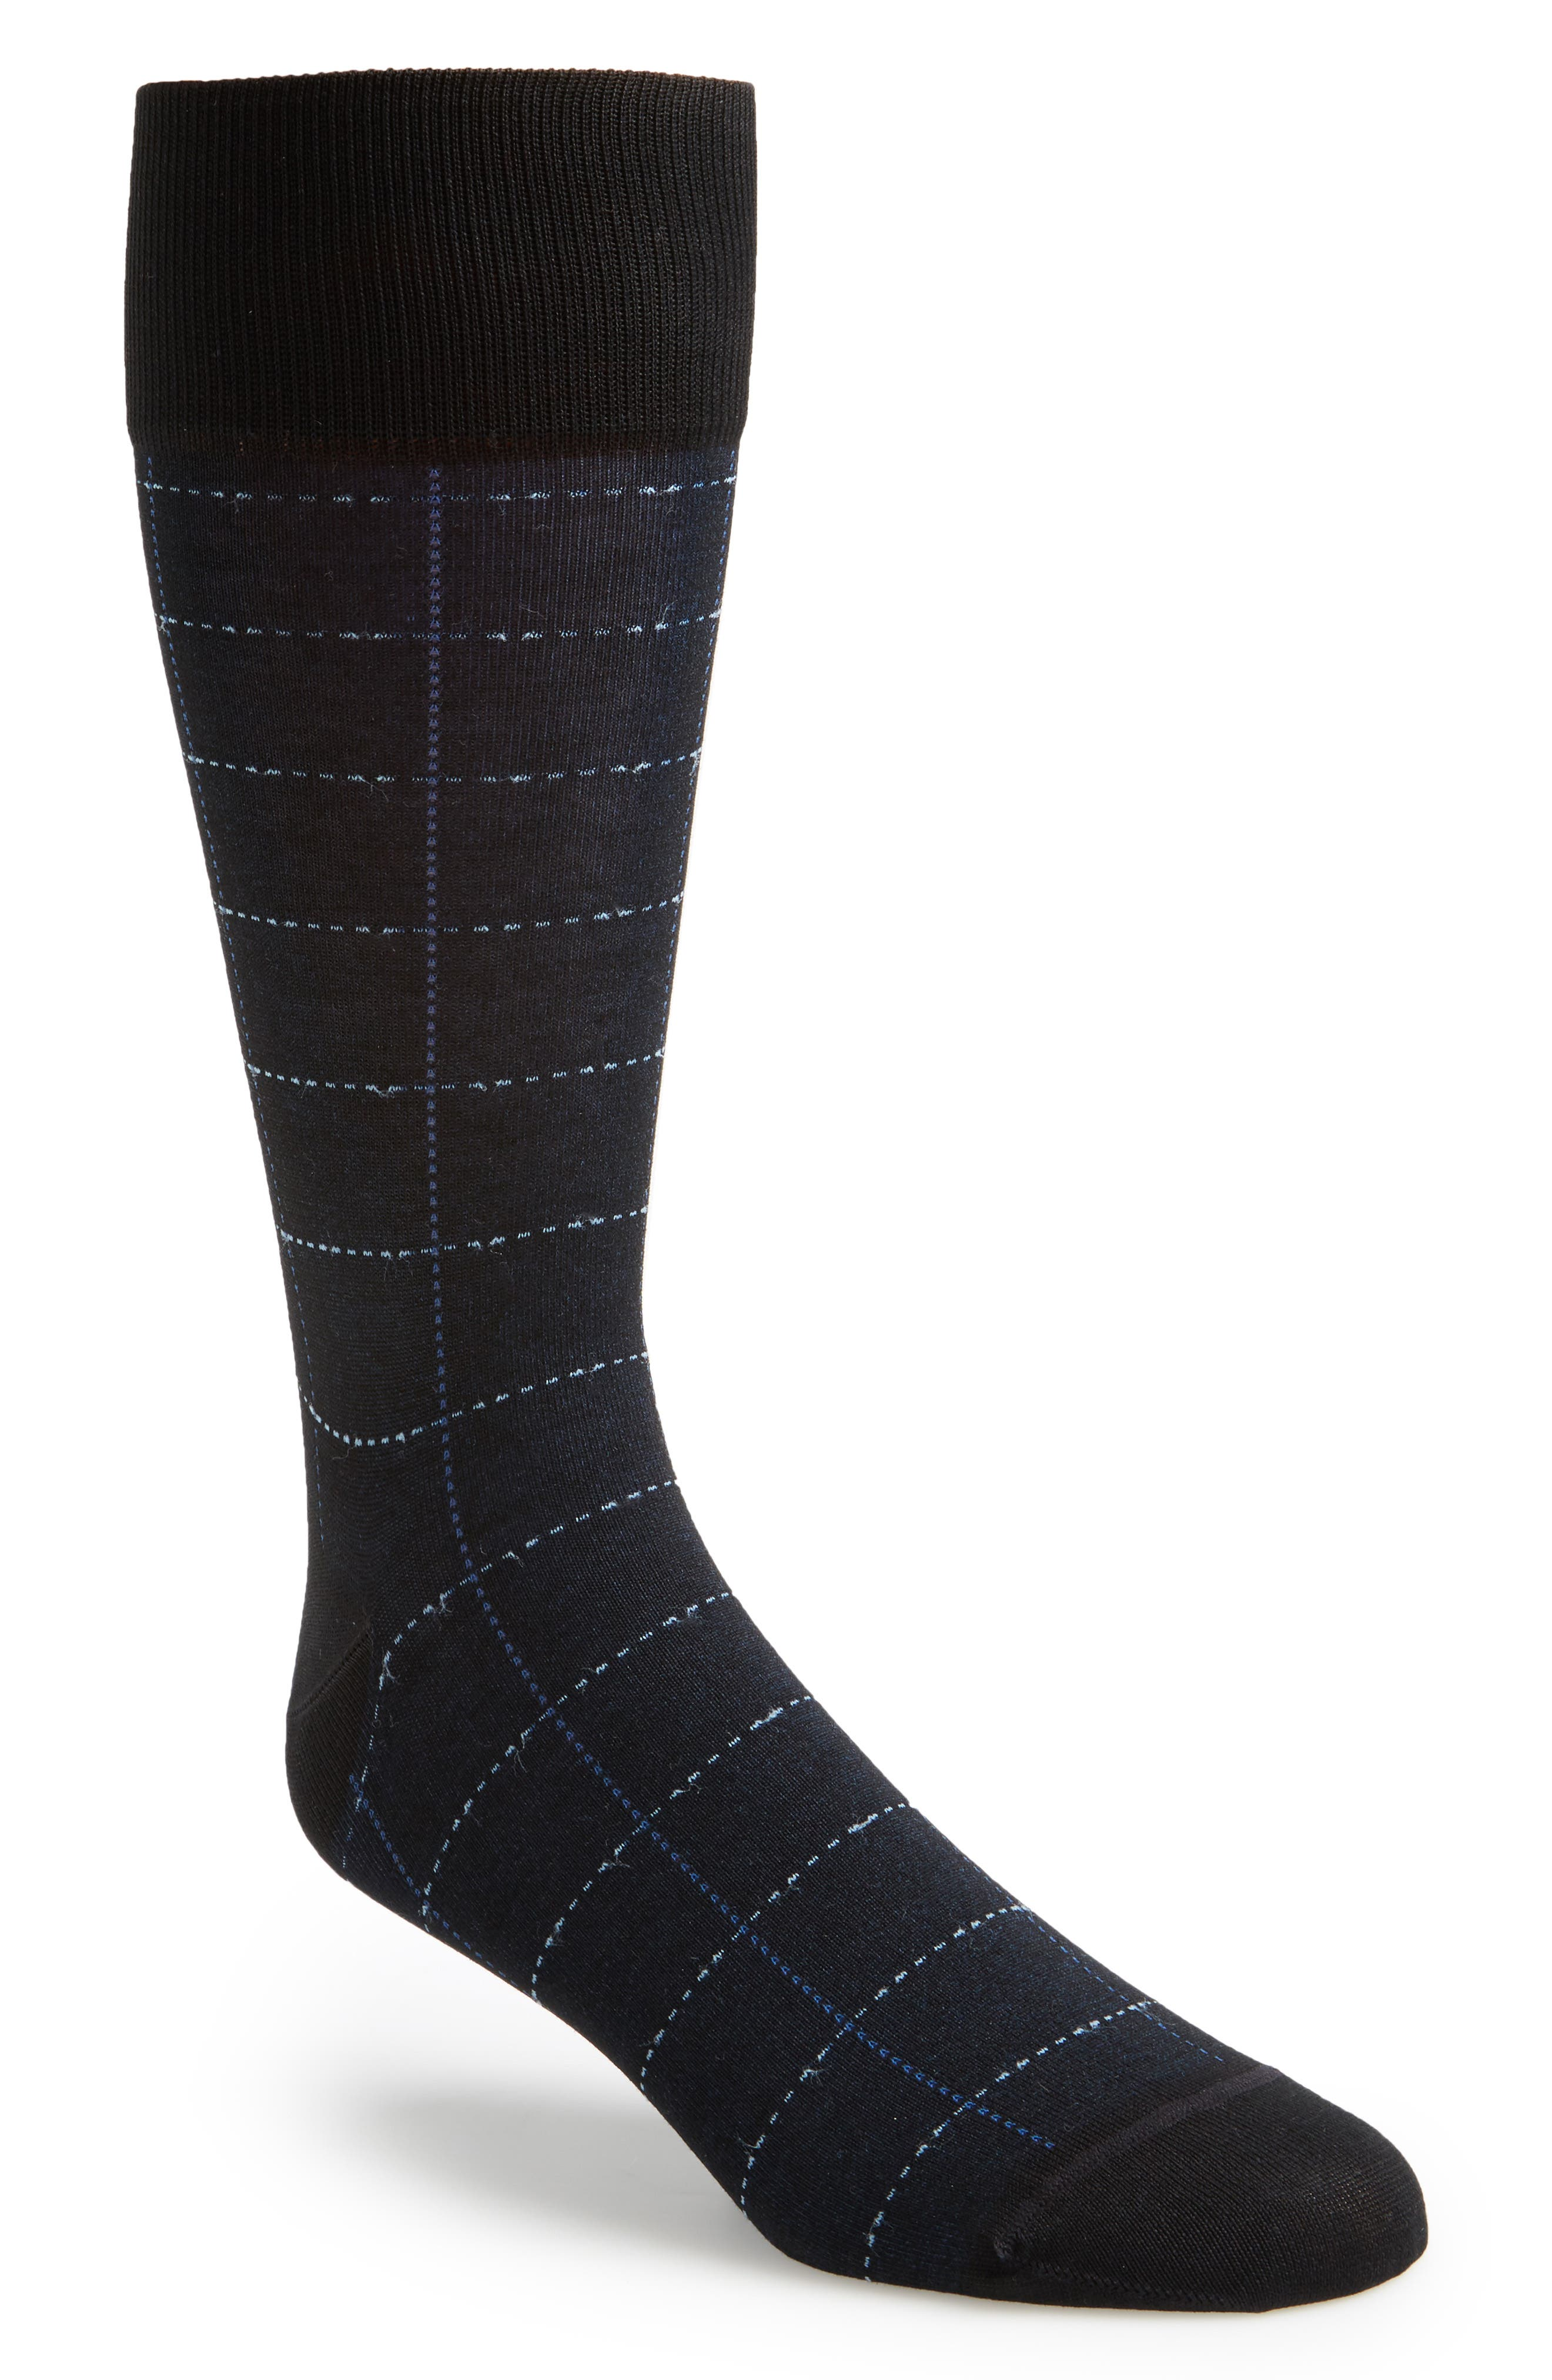 Broken Grid Socks,                         Main,                         color, 001